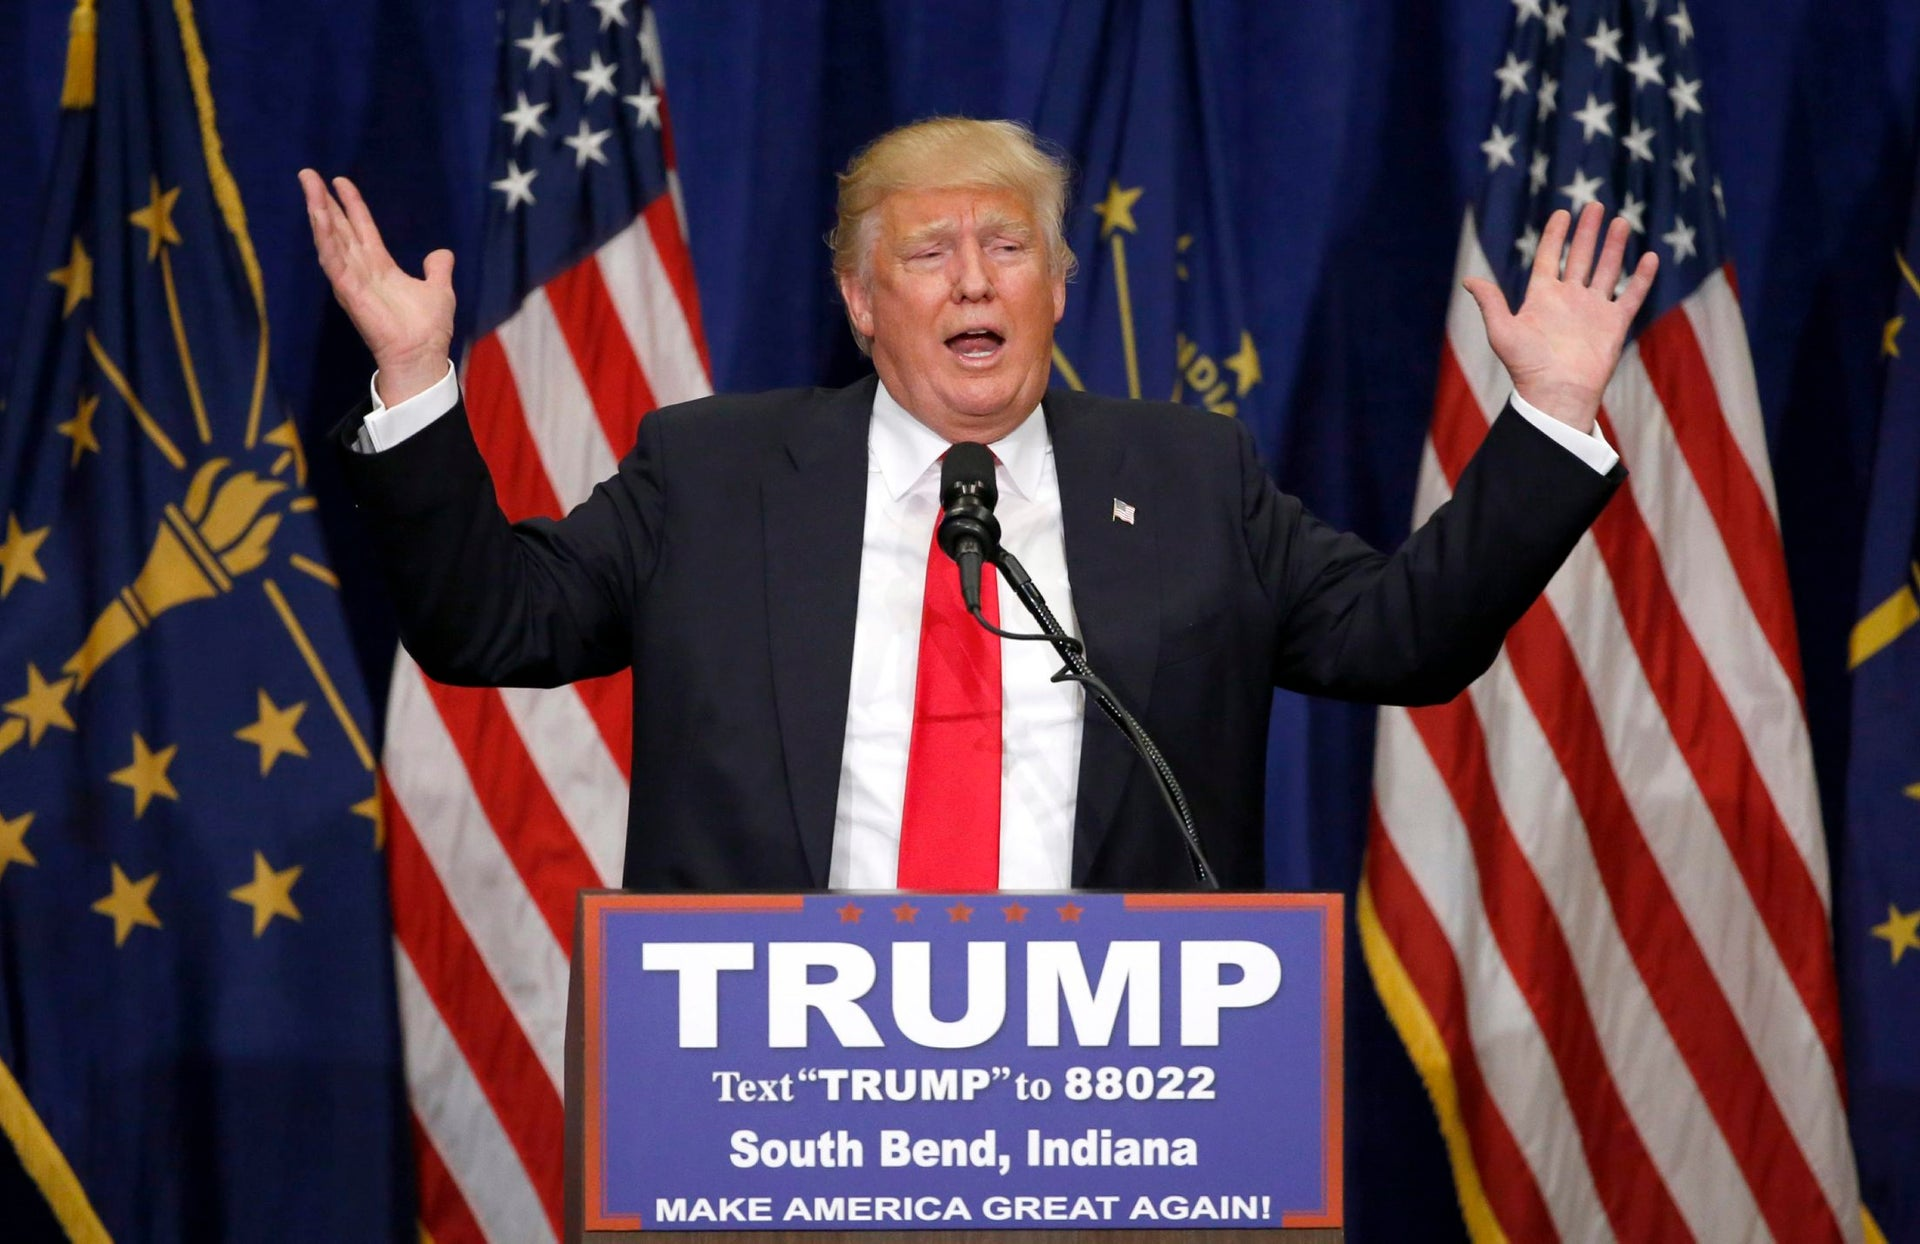 U.S. Republican presidential candidate Donald Trump speaks during a campaign stop, South Bend, Indiana, May 2, 2016.